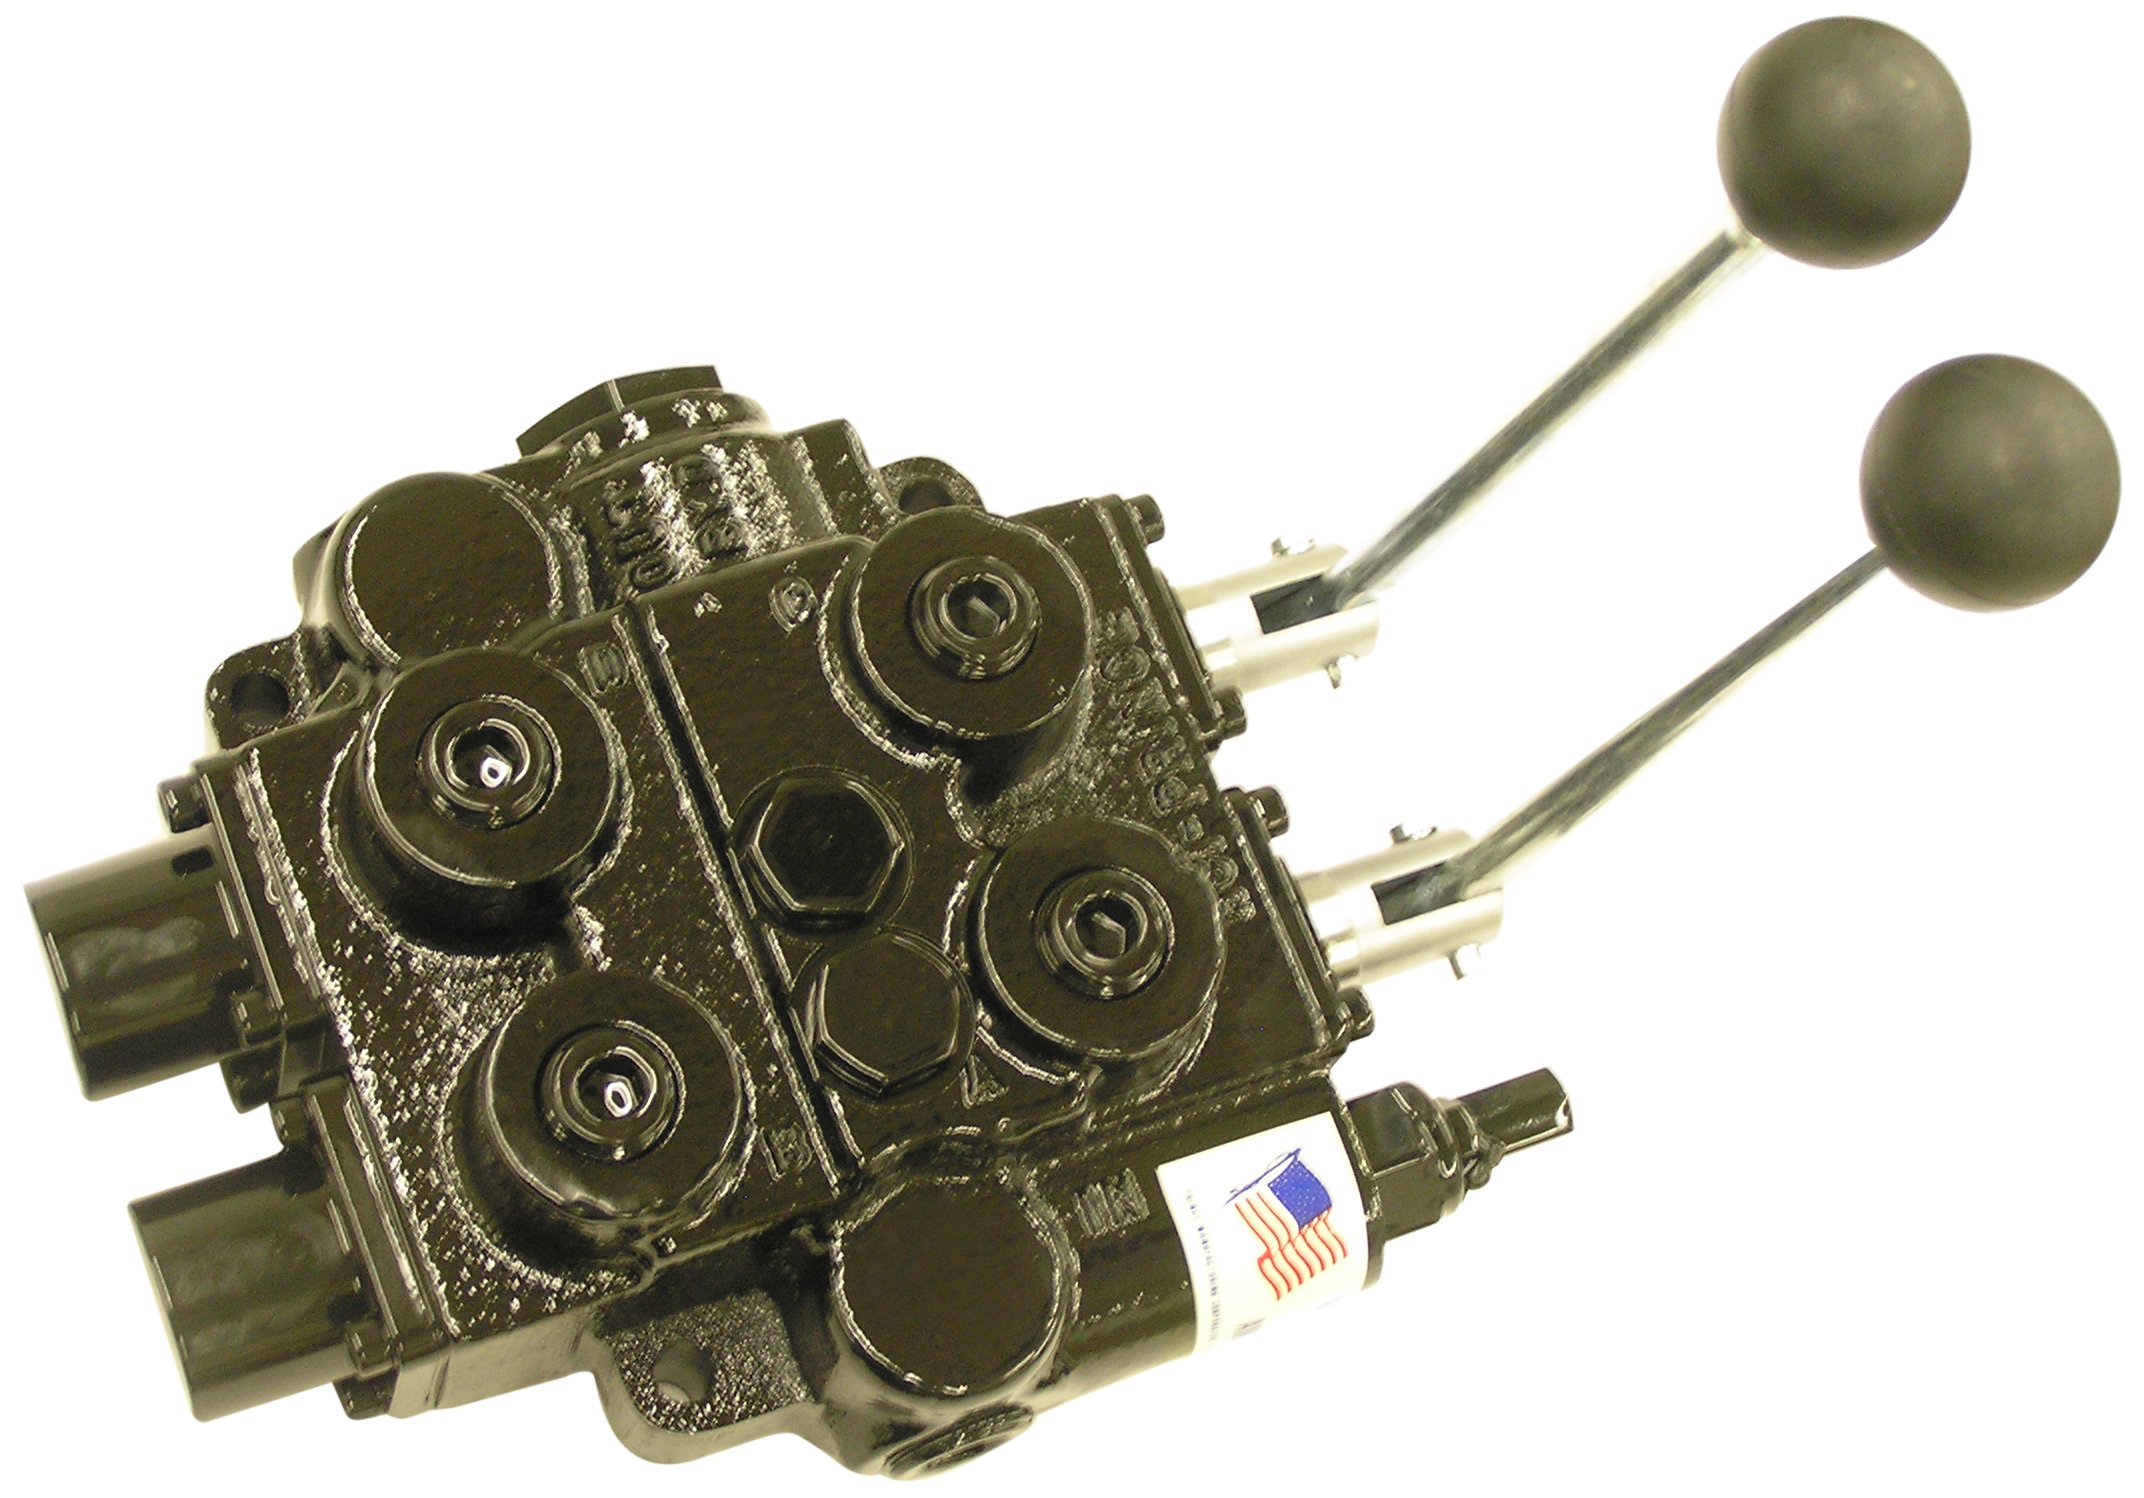 Prince RD526ECBA1B2B1 Directional Control Valve, Monoblock, Cast Iron, 2 Spool, 4 Ways, 3 Positions, Open Center, Motor Spool, Tandem, Spool 1: 3 Position Detent, No Centering Spring, Spool 2: Spring Center, Lever Handle, 3000 psi, 25 gpm, In/Out: #12 SAE